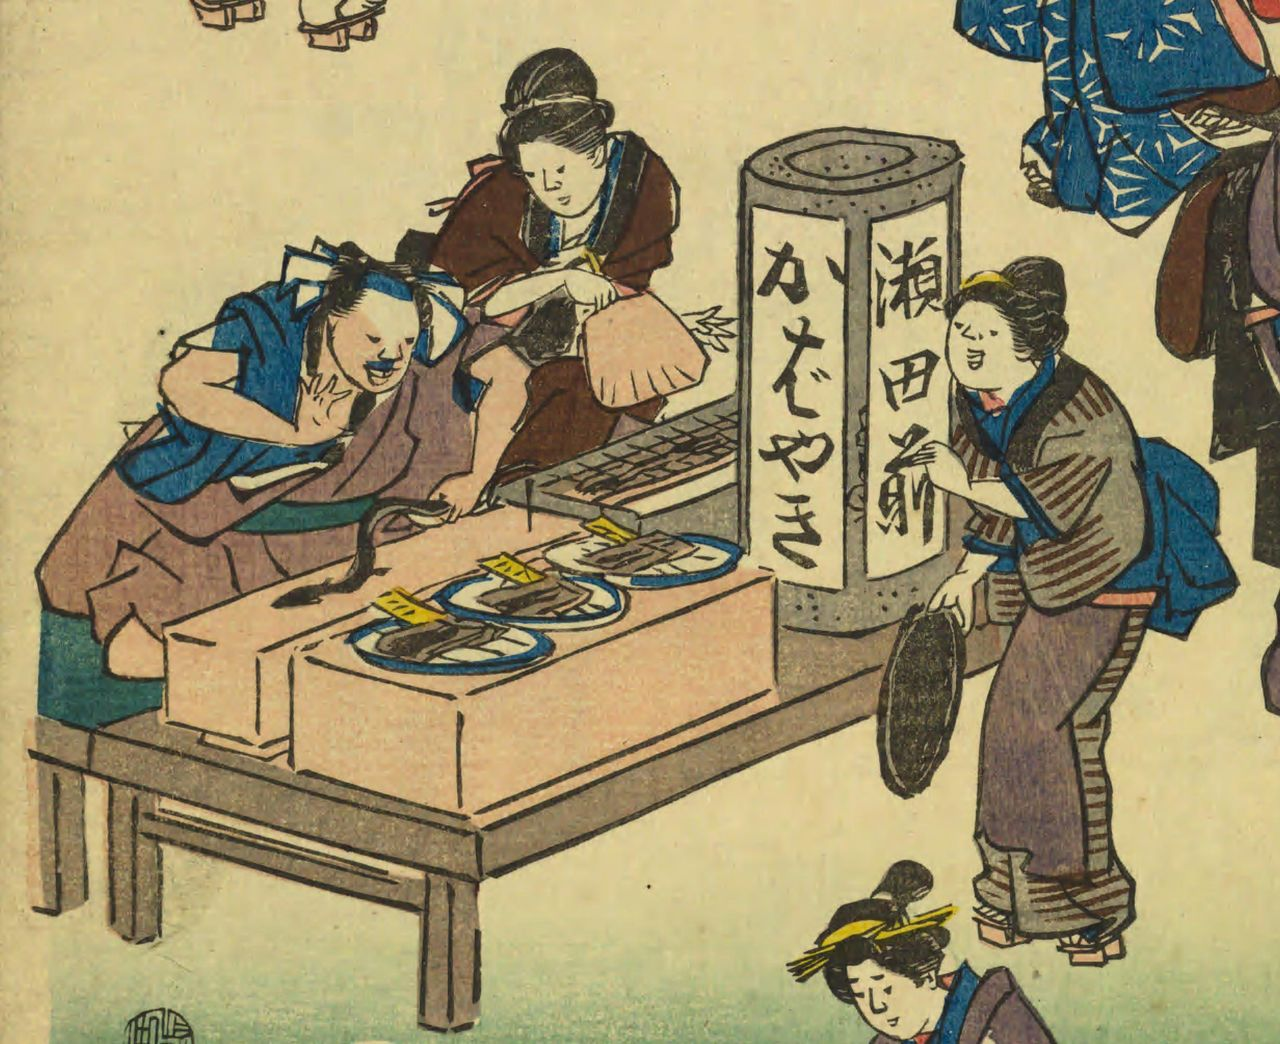 Cooking eel to sell on the spot. From Jōrurimachi hanka no zu (Flourishing Business in Balladtown) by Utagawa Hiroshige. (Courtesy the National Diet Library)